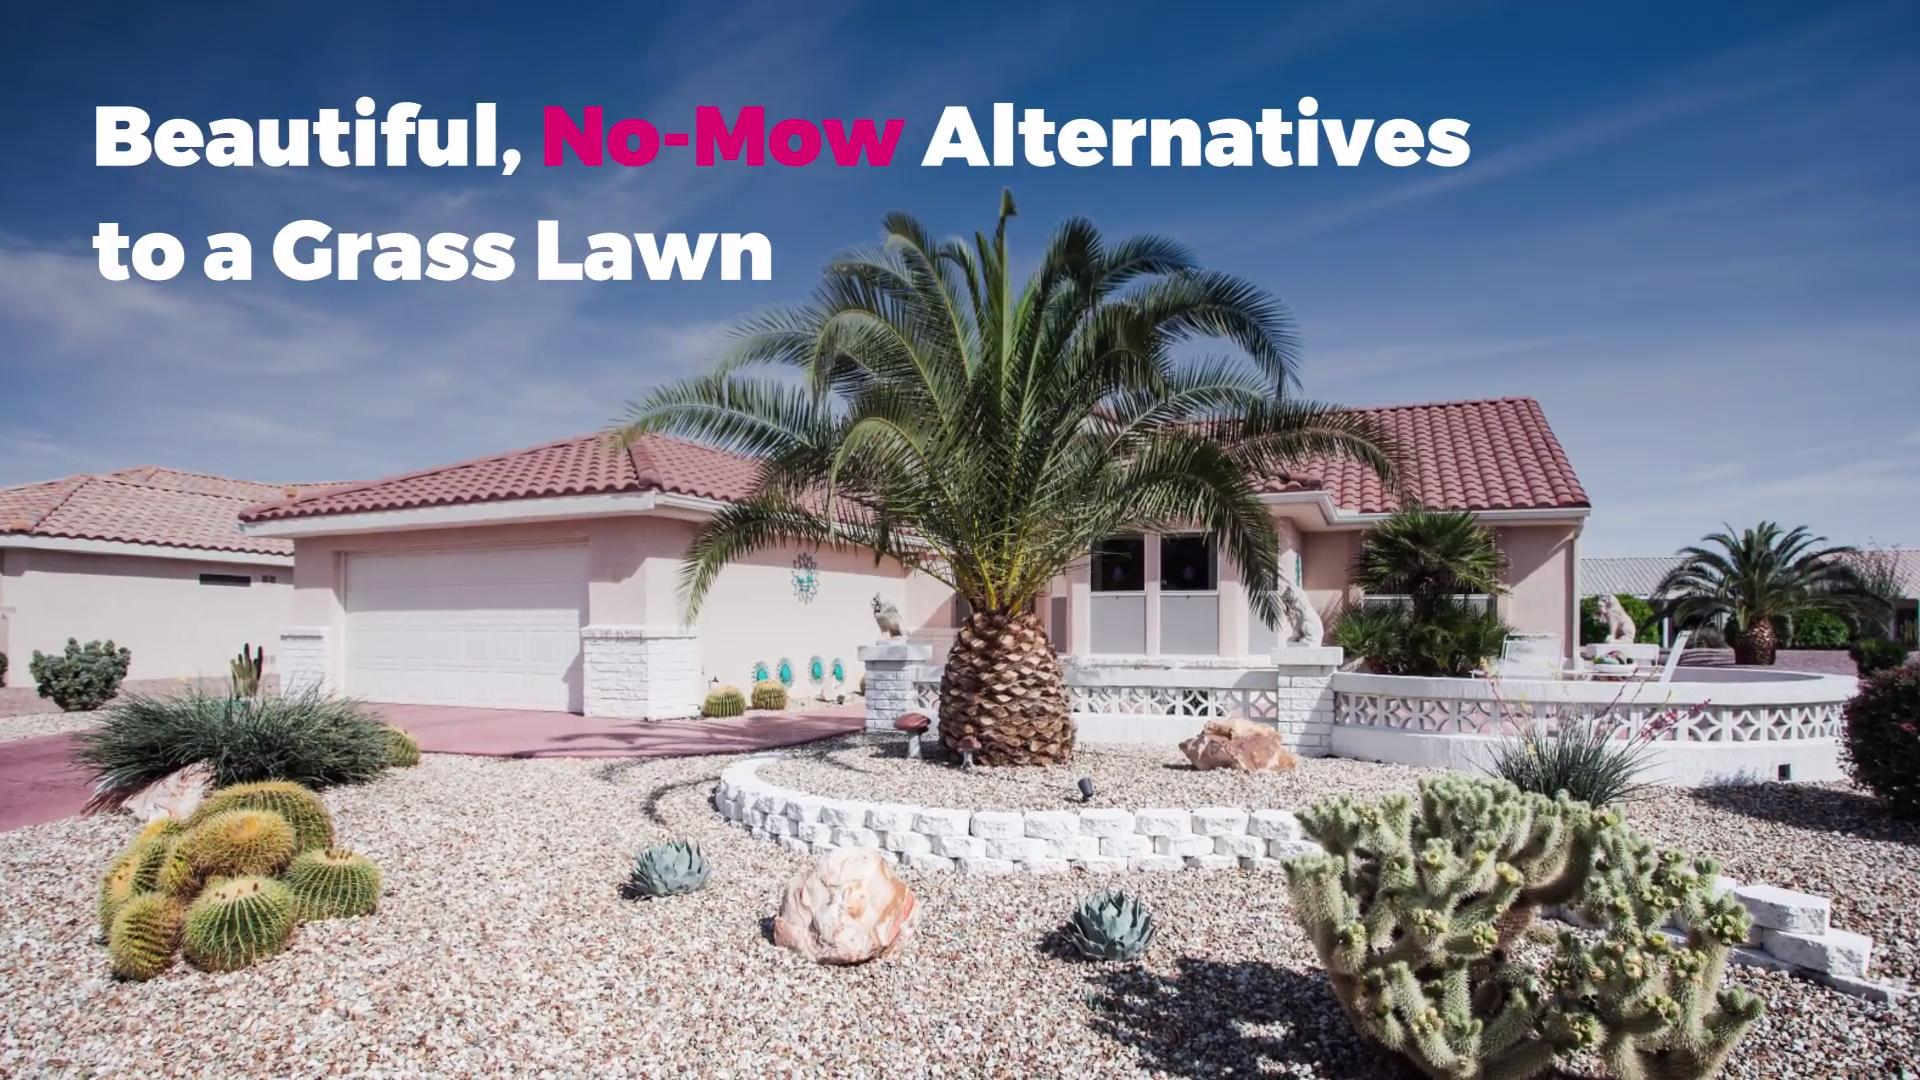 Beautiful, No-Mow Alternatives to a Grass Lawn